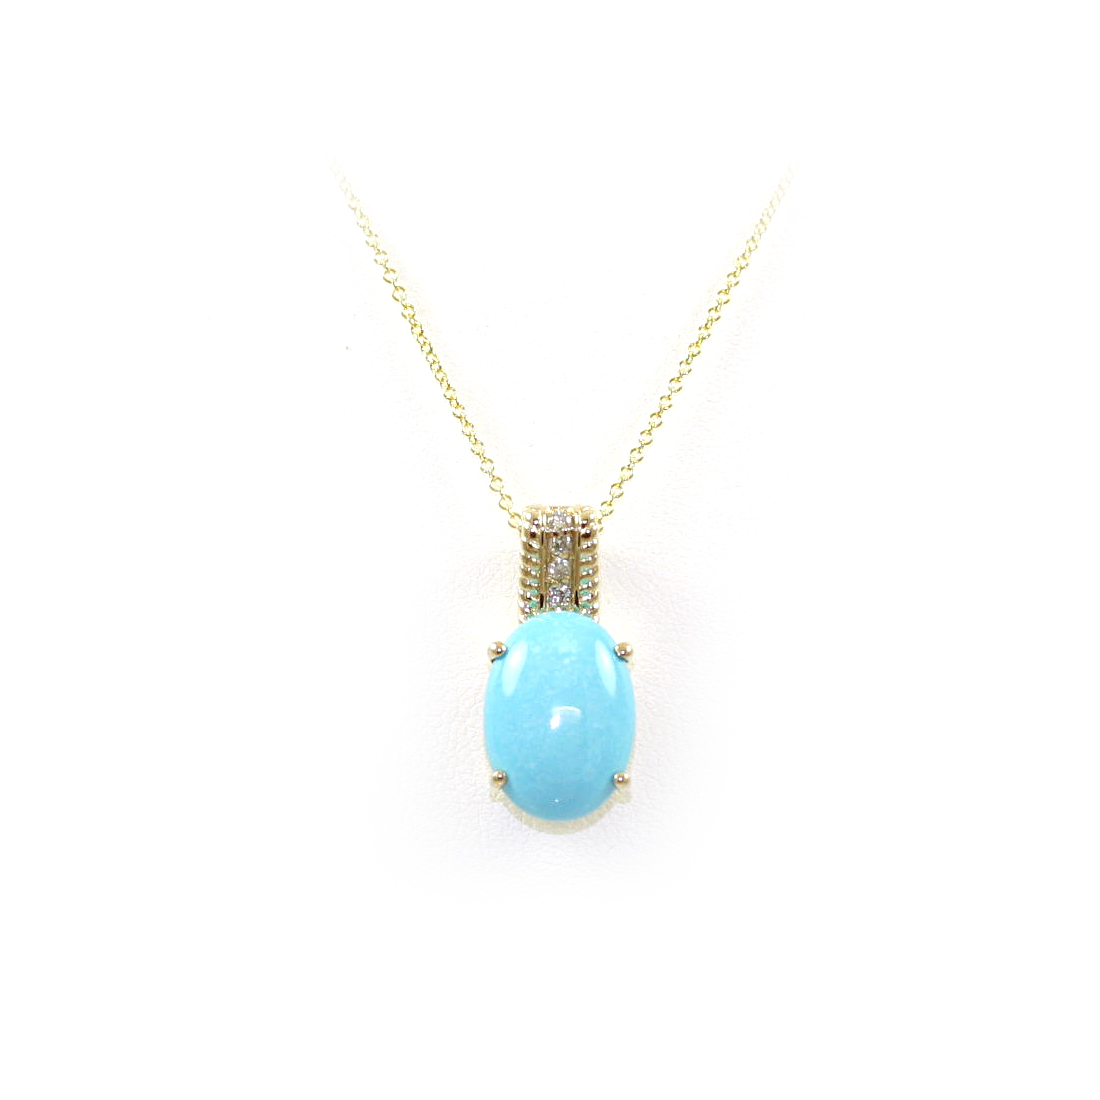 14 Karat Yellow Gold Oval Turquoise and Diamond Pendant and Chain